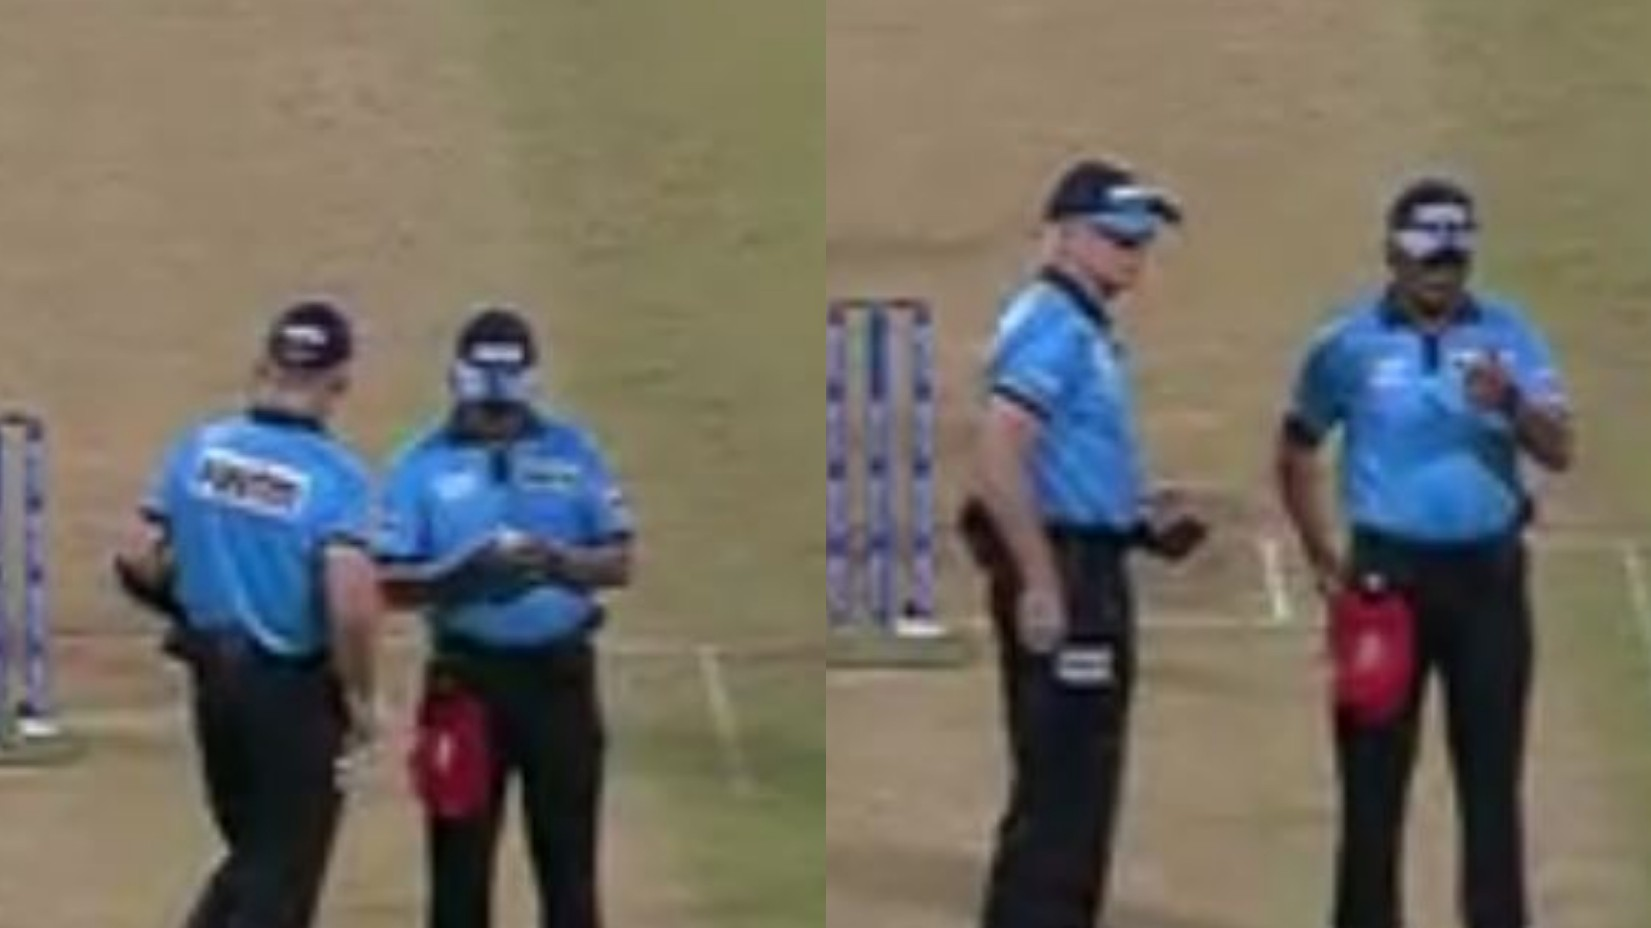 IPL 2019: Twitter reacts as umpire Shamshuddin pockets the ball and then forgets leaving De Villiers in splits